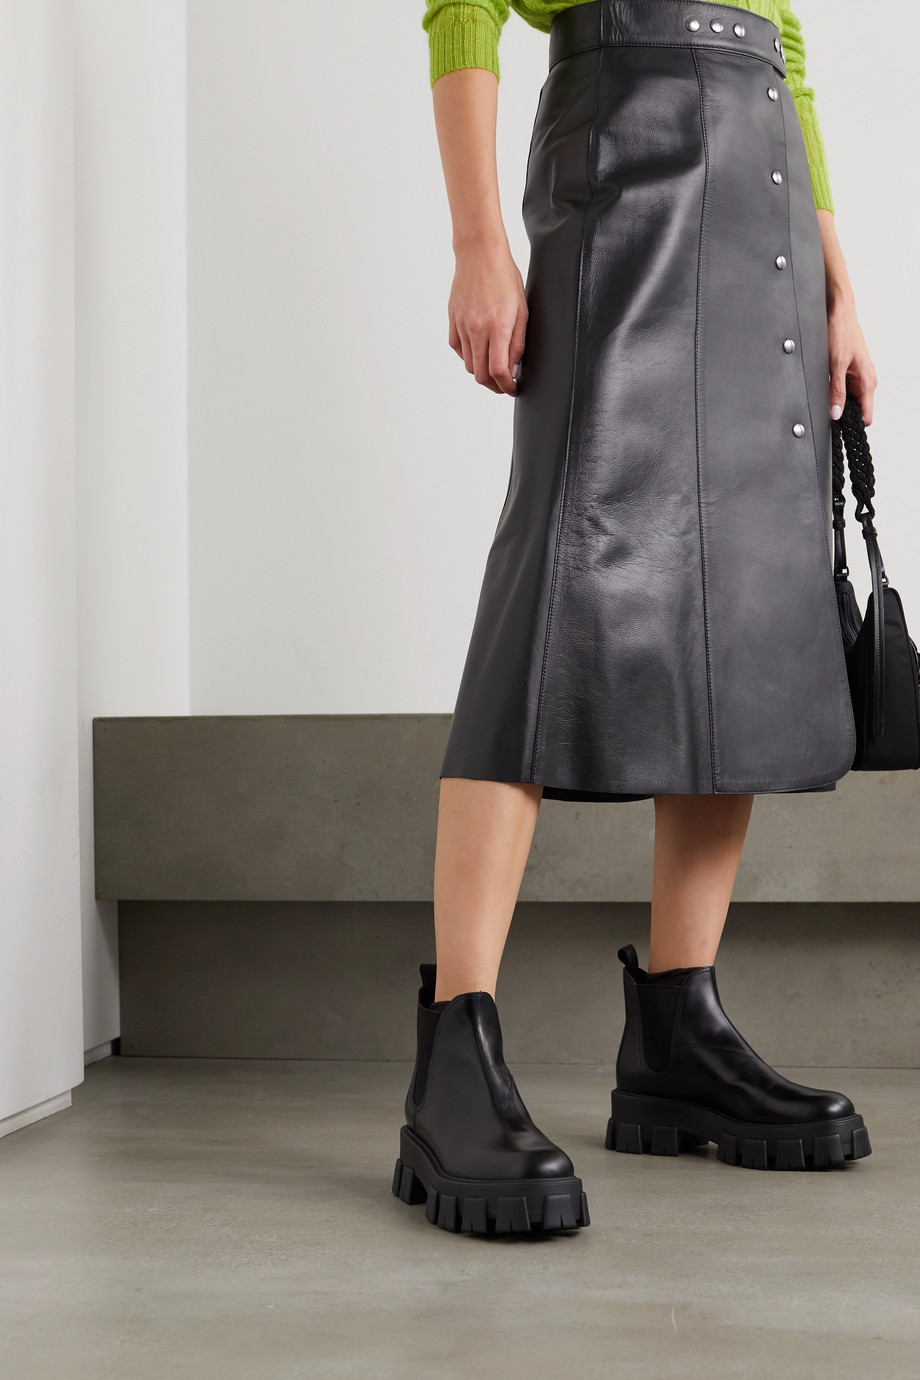 Prada 60 glossed-leather platform Chelsea boots